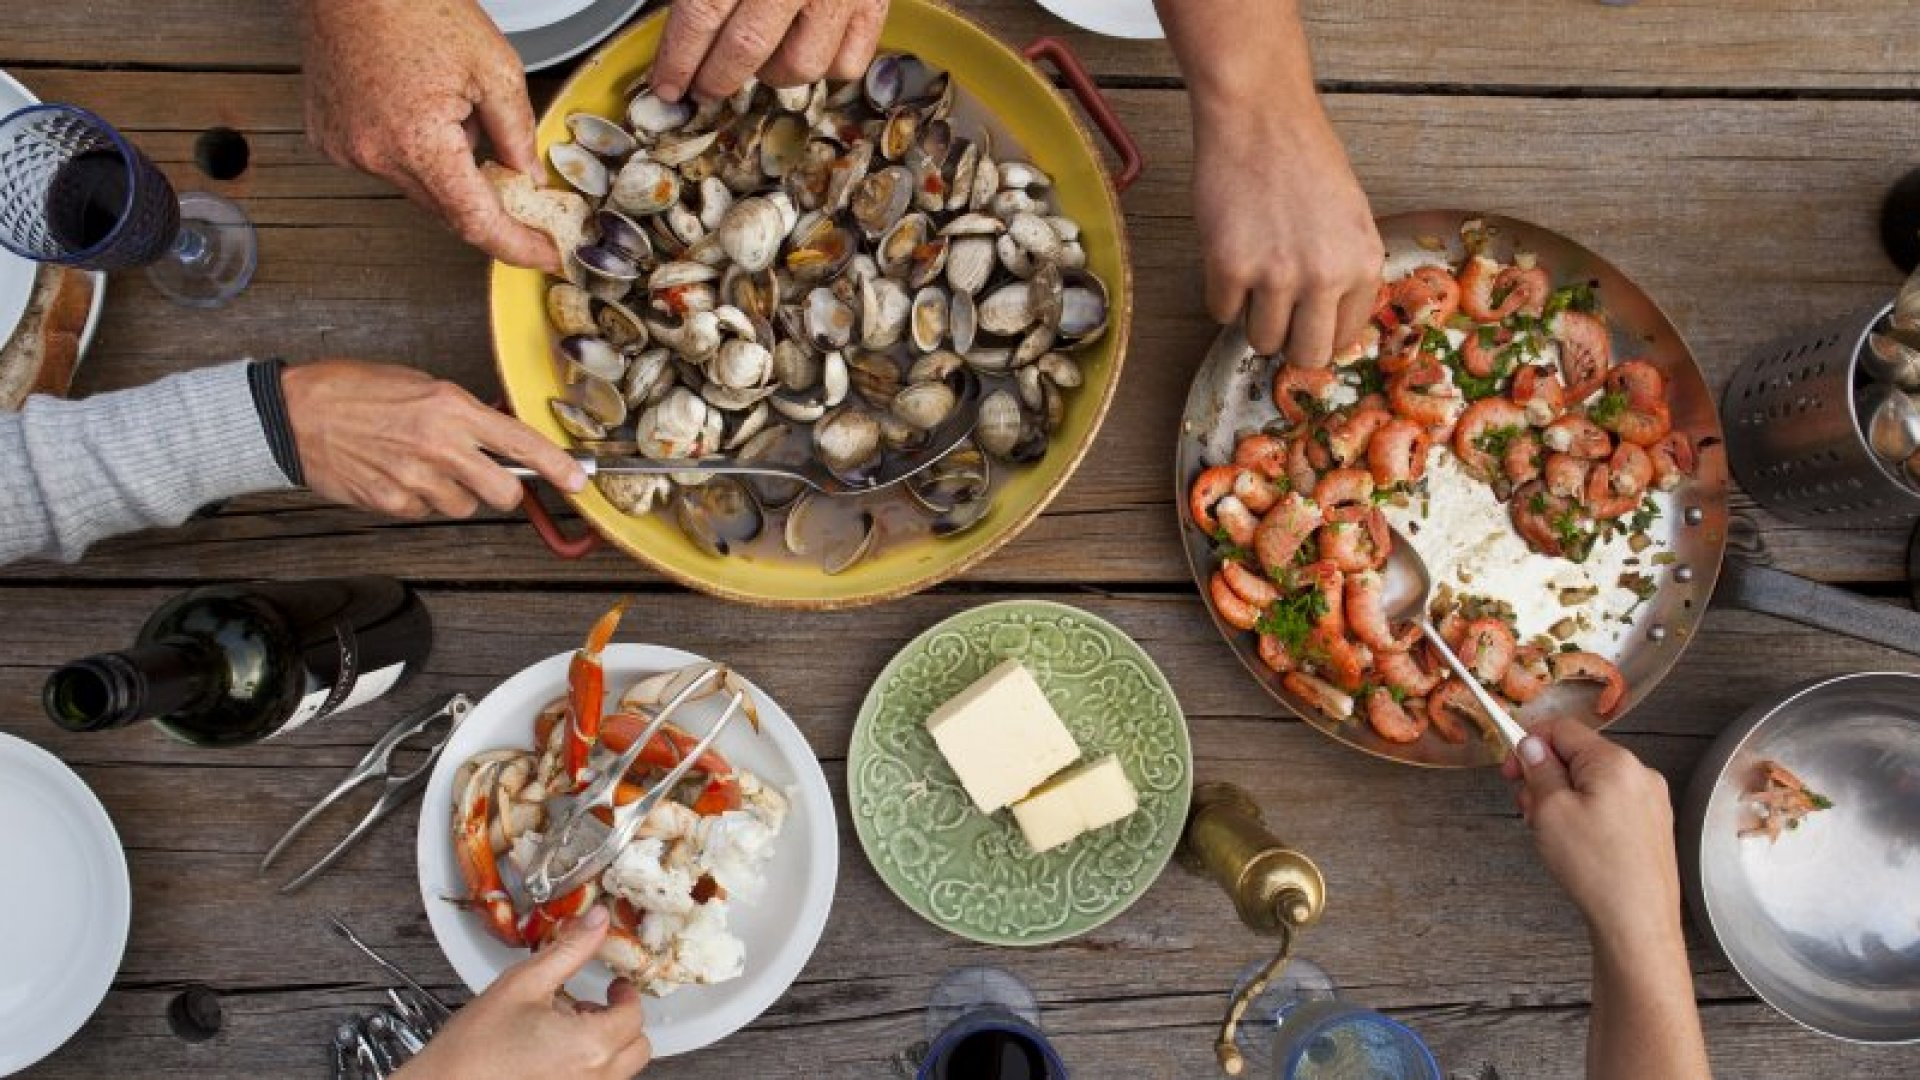 Looking for a Growth Industry? Feed the Online Foodie Craze